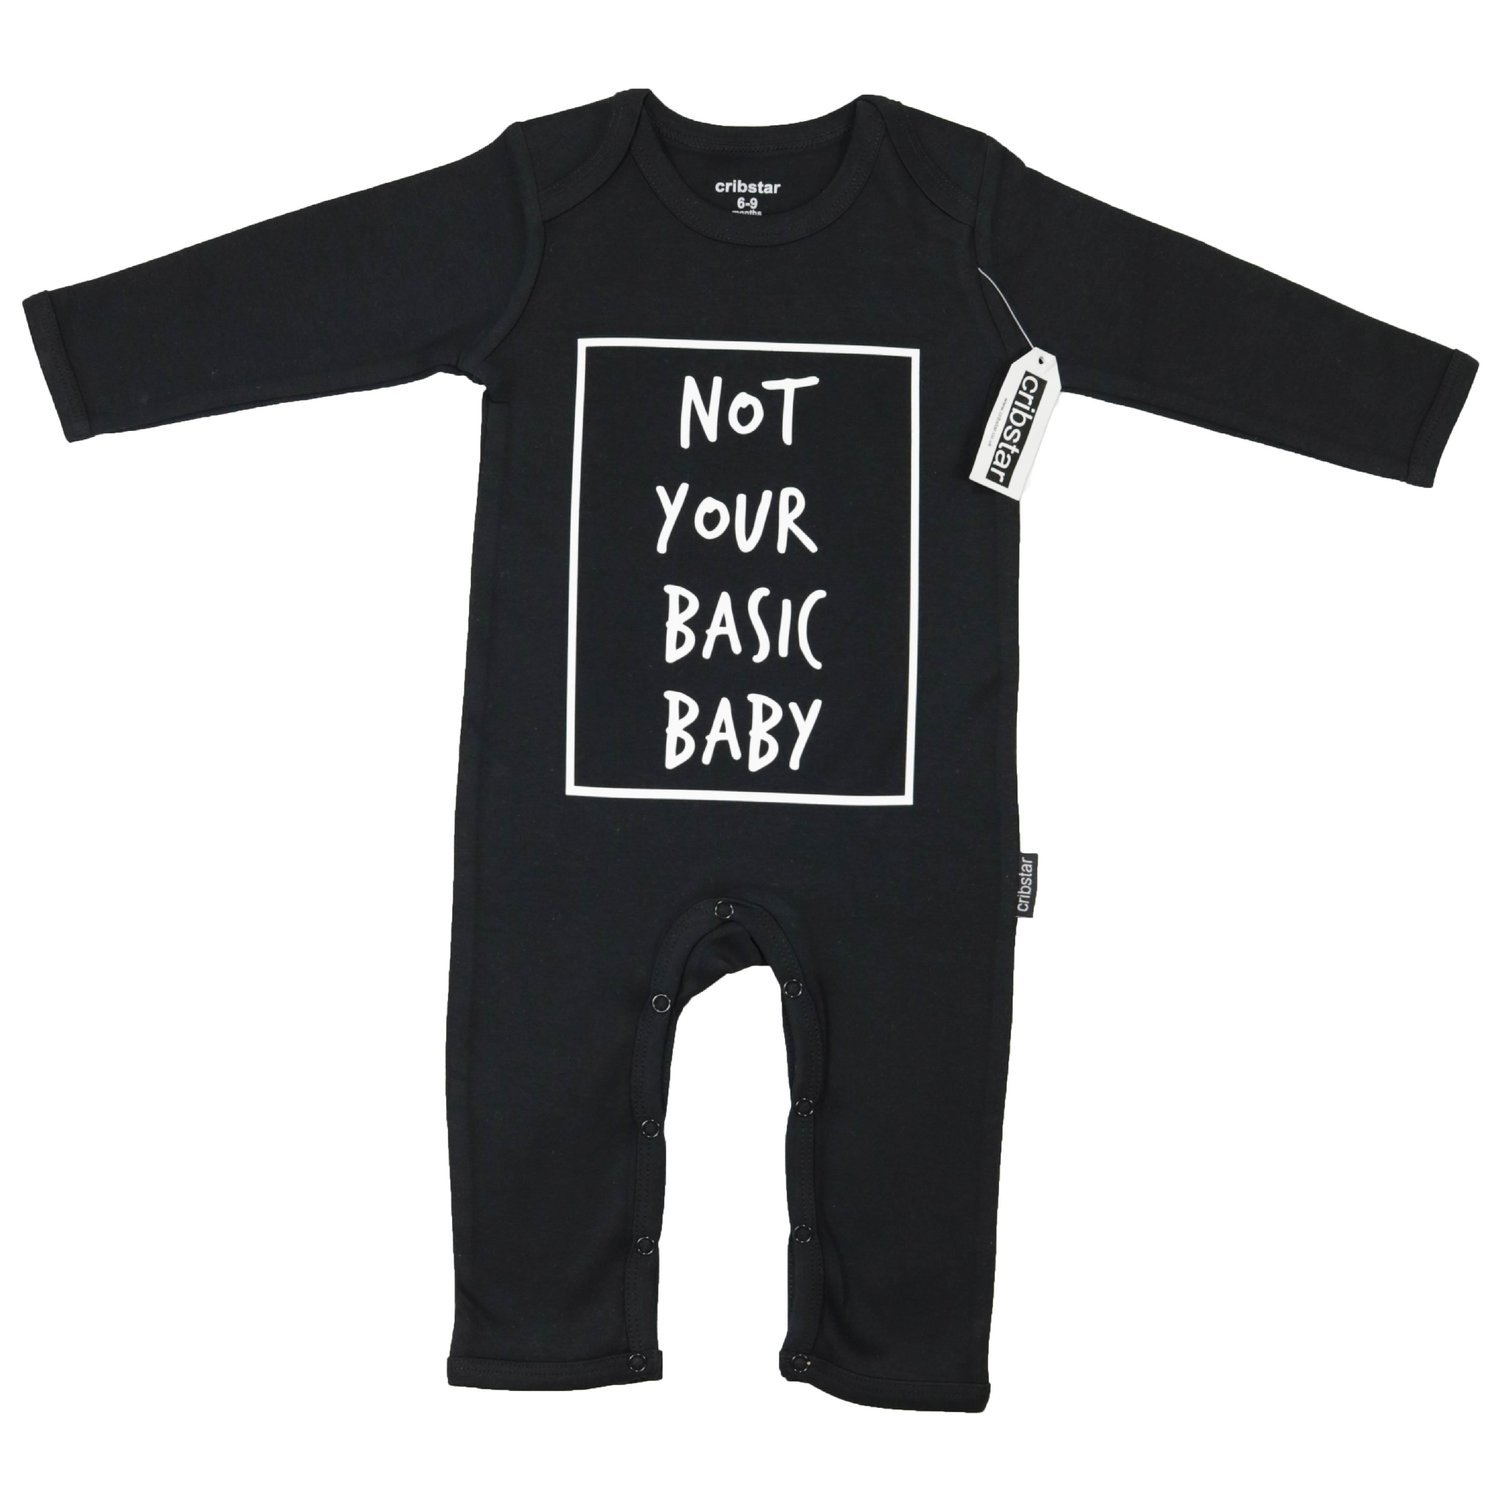 Cribstar  Not Your Basic Baby  Baby Romper - Black